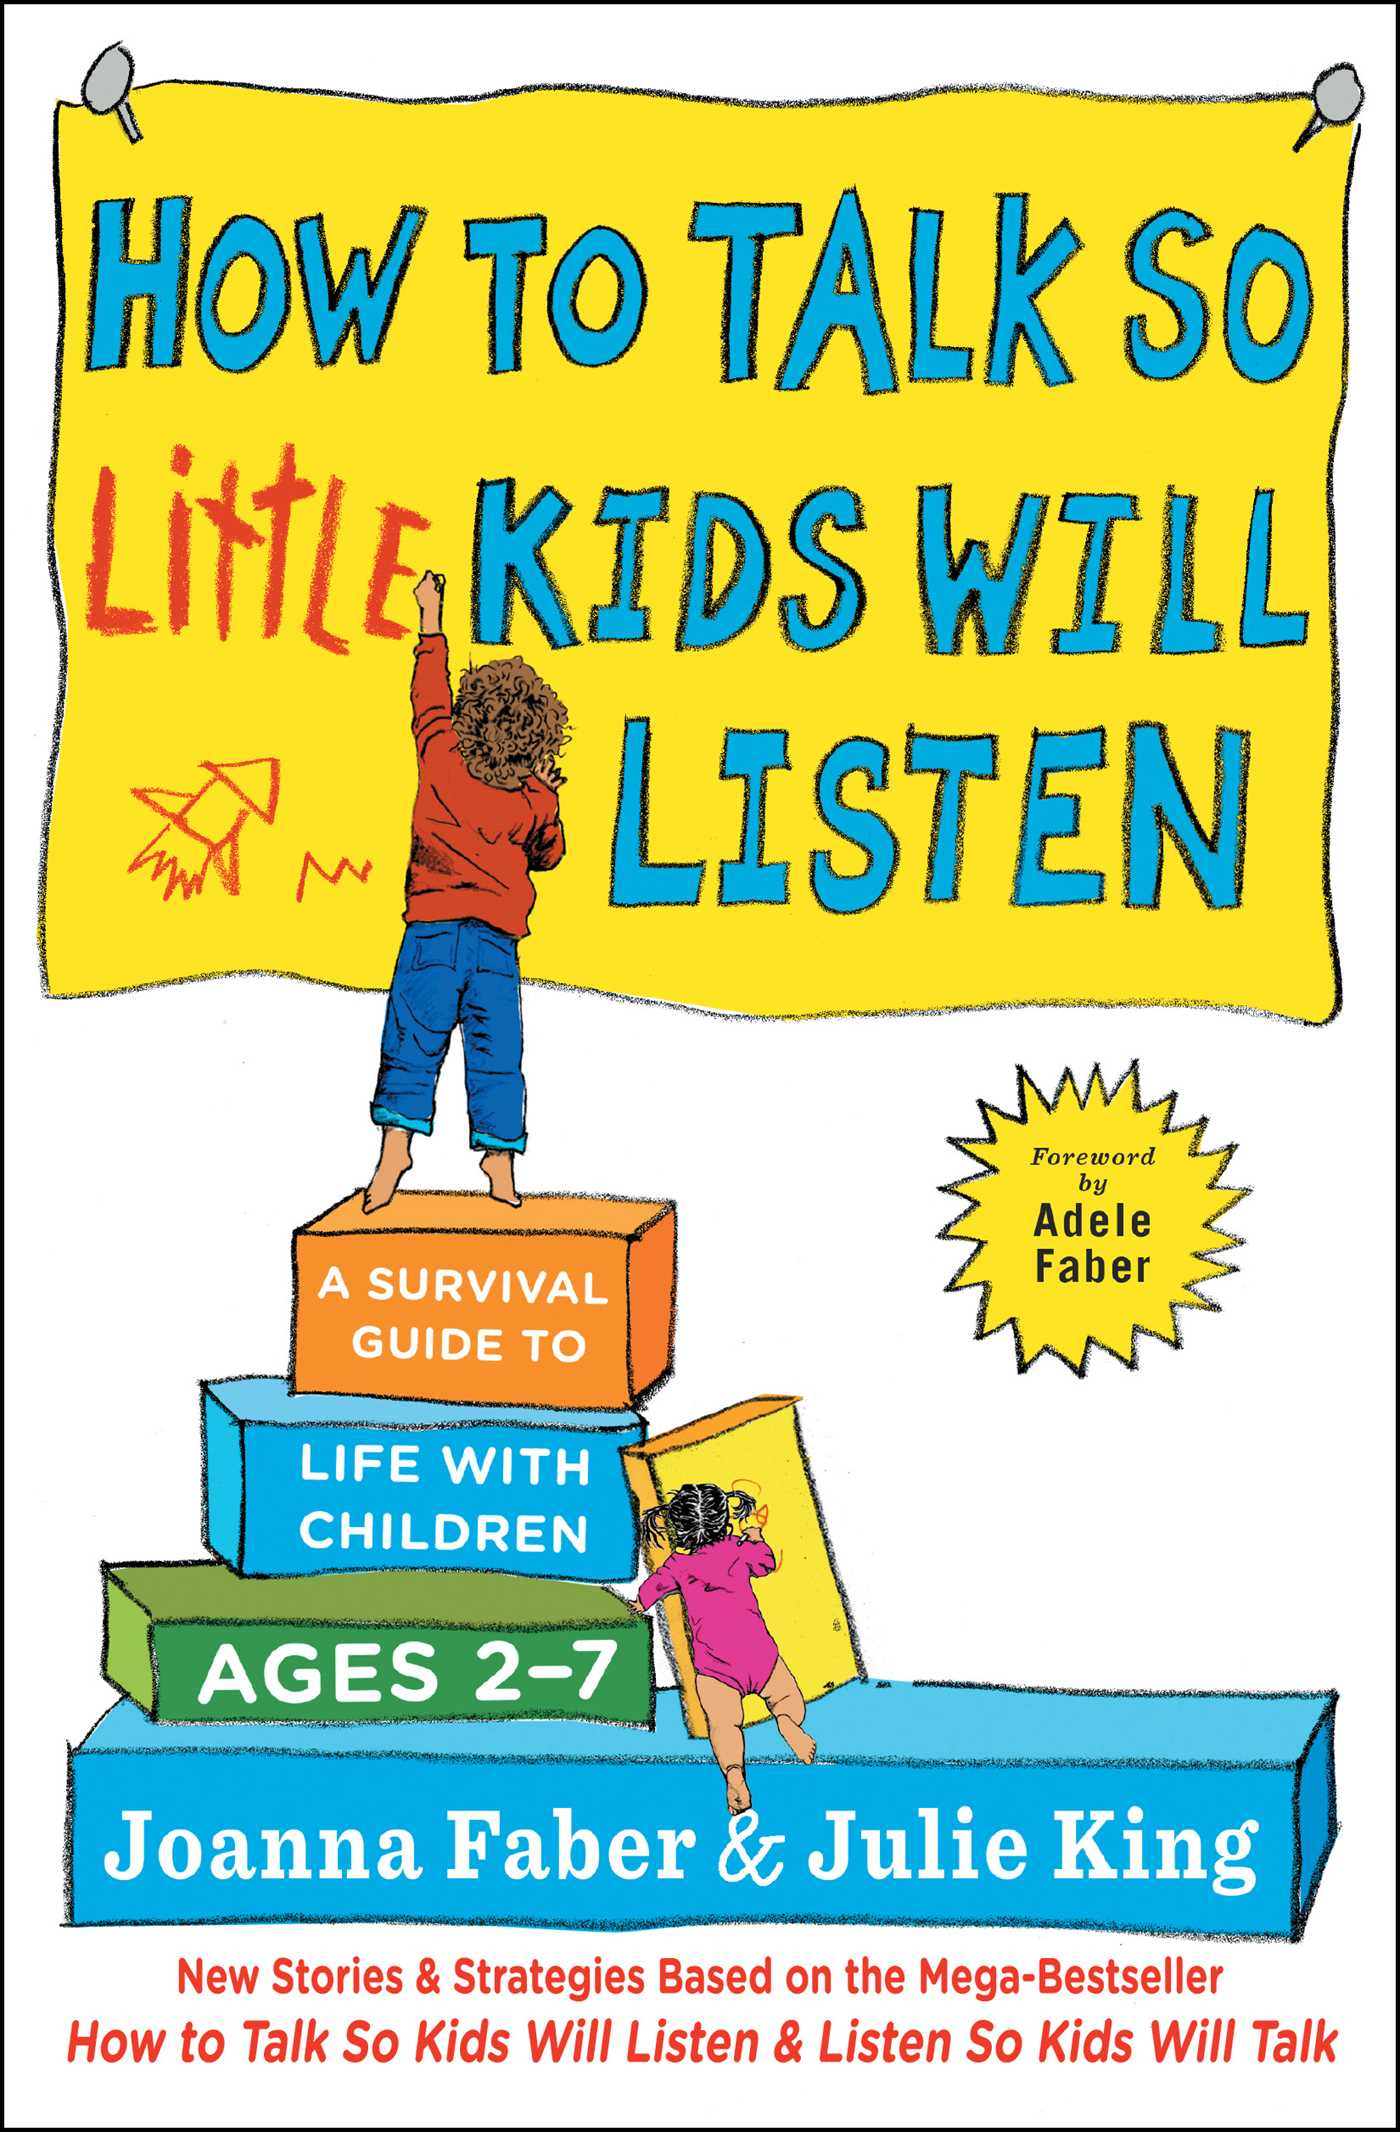 How to Talk so Little Kids Will Listen A Survival Guide to Life with Children Ages 2-7